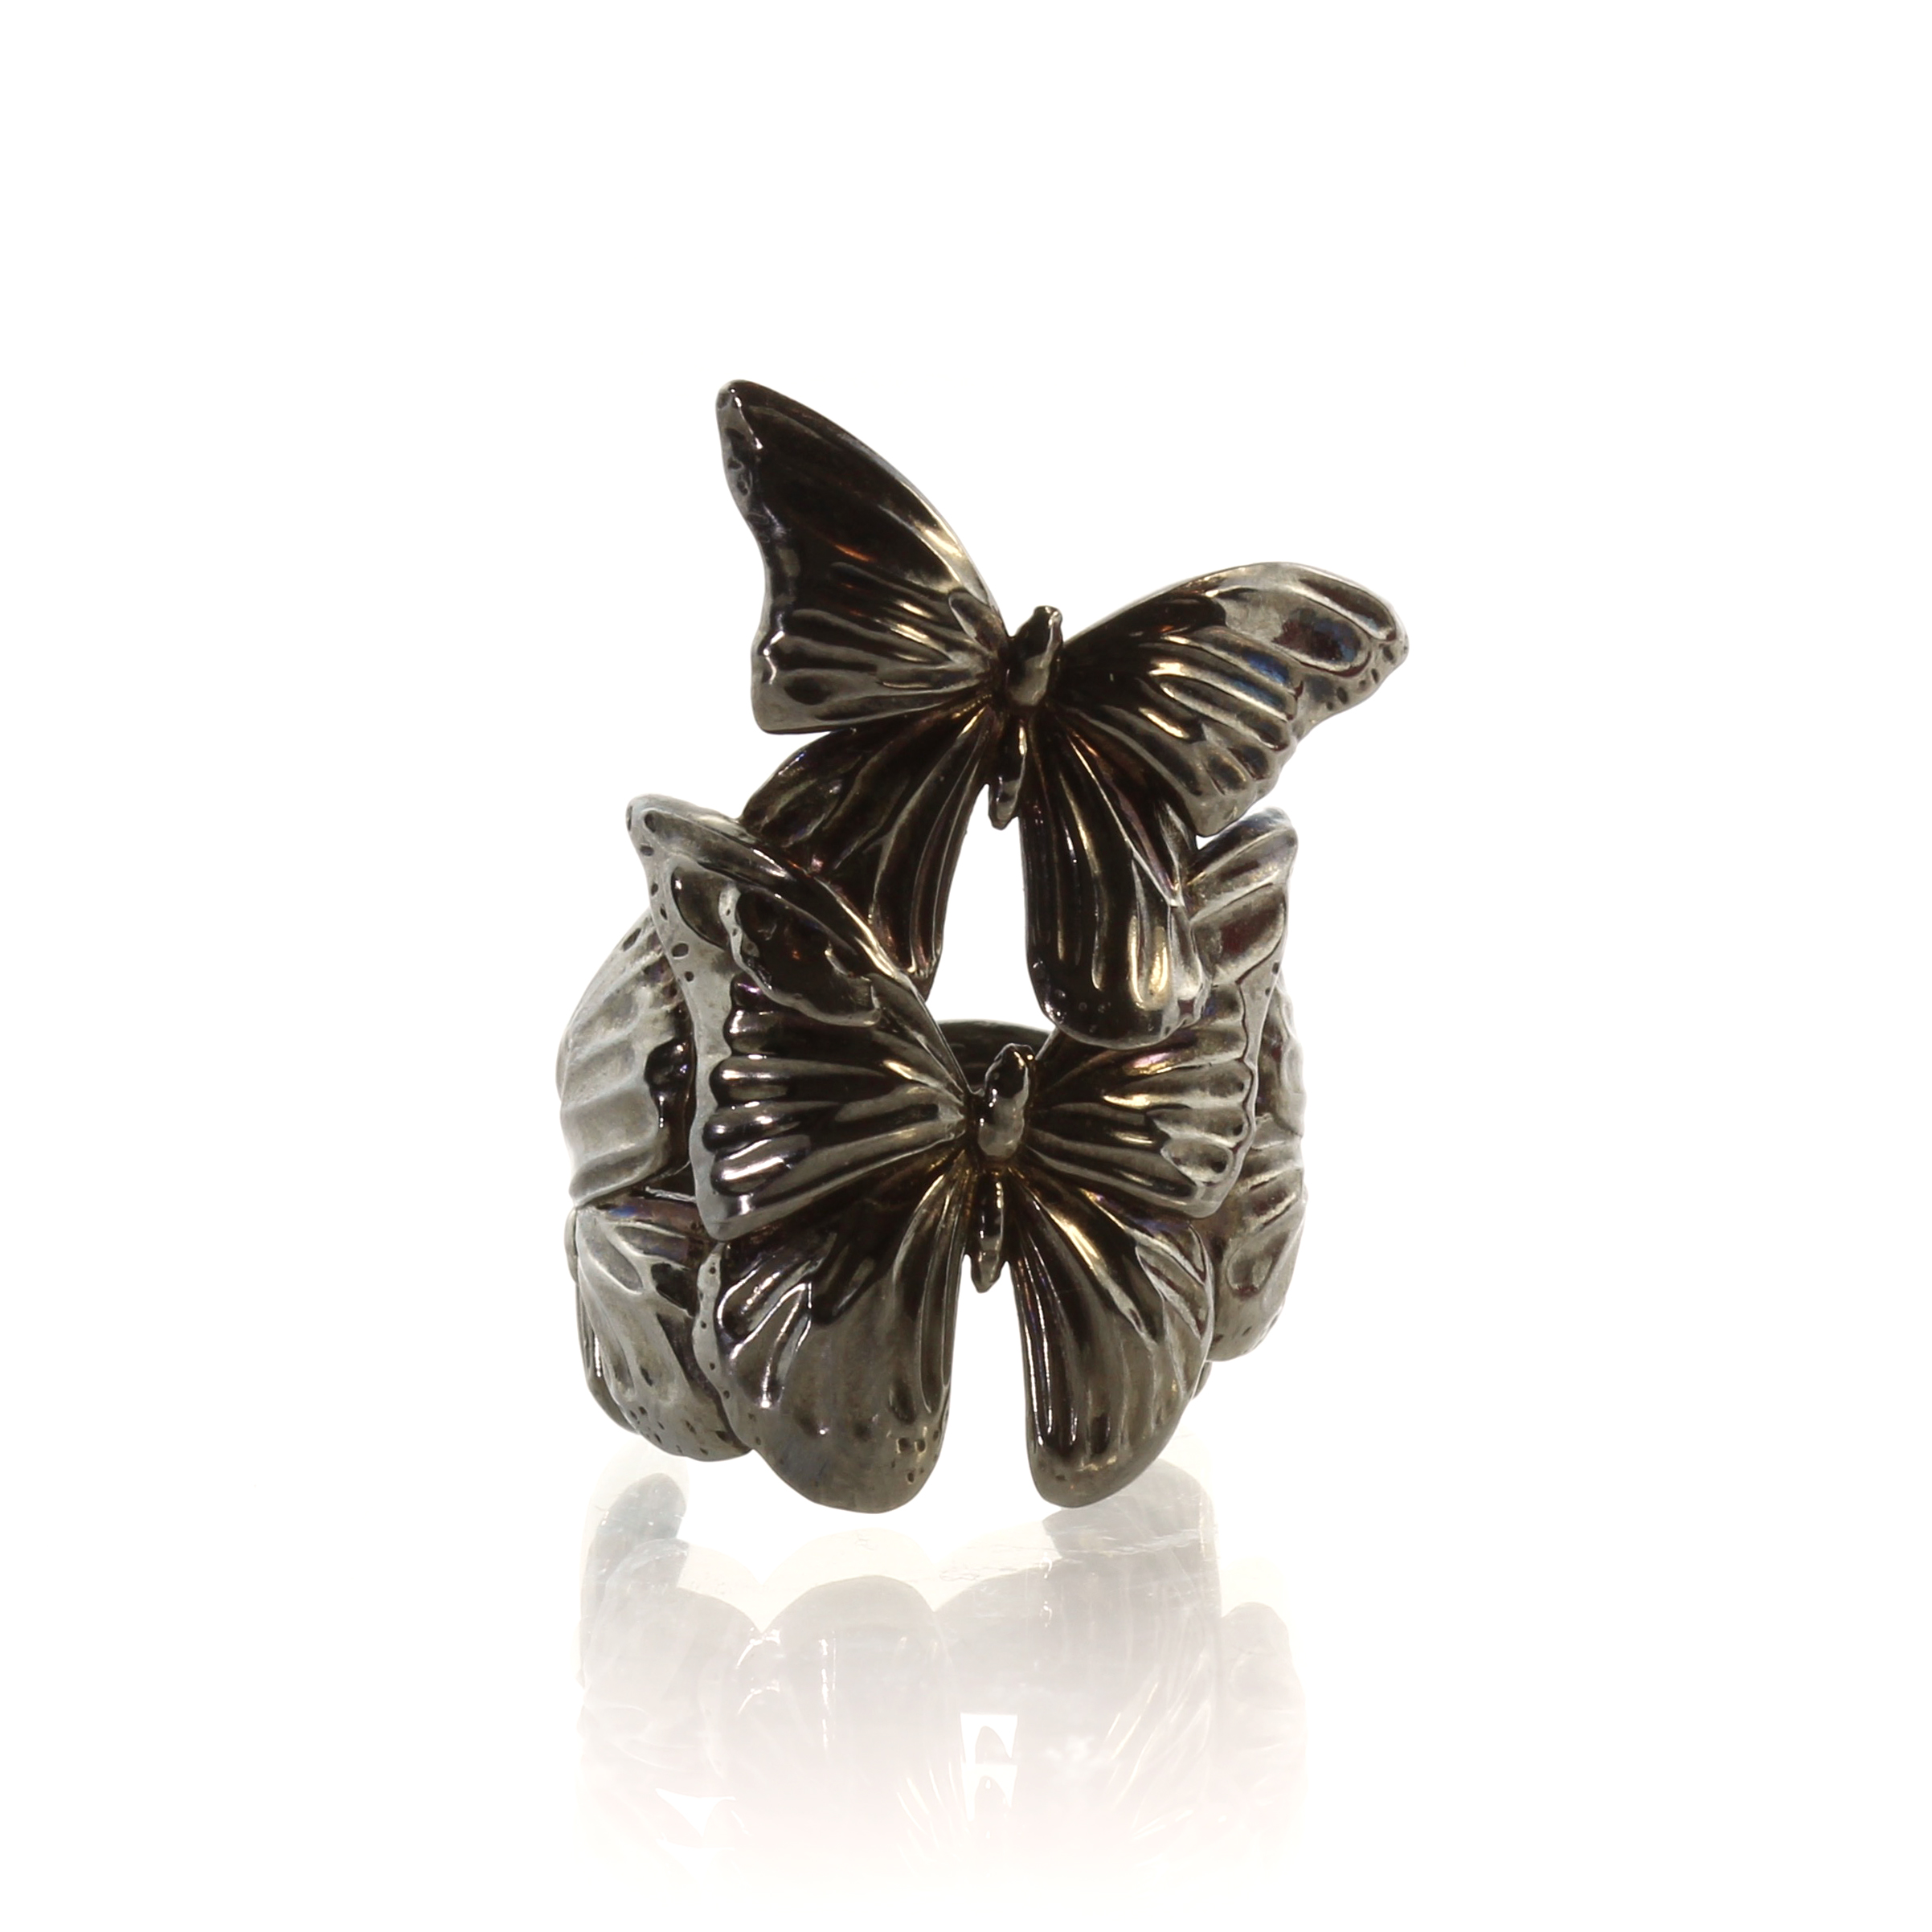 Los 130 - GEORG JENSEN A contemporary 'Askill' butterfly ring in oxidised sterling silver designed by Jordan